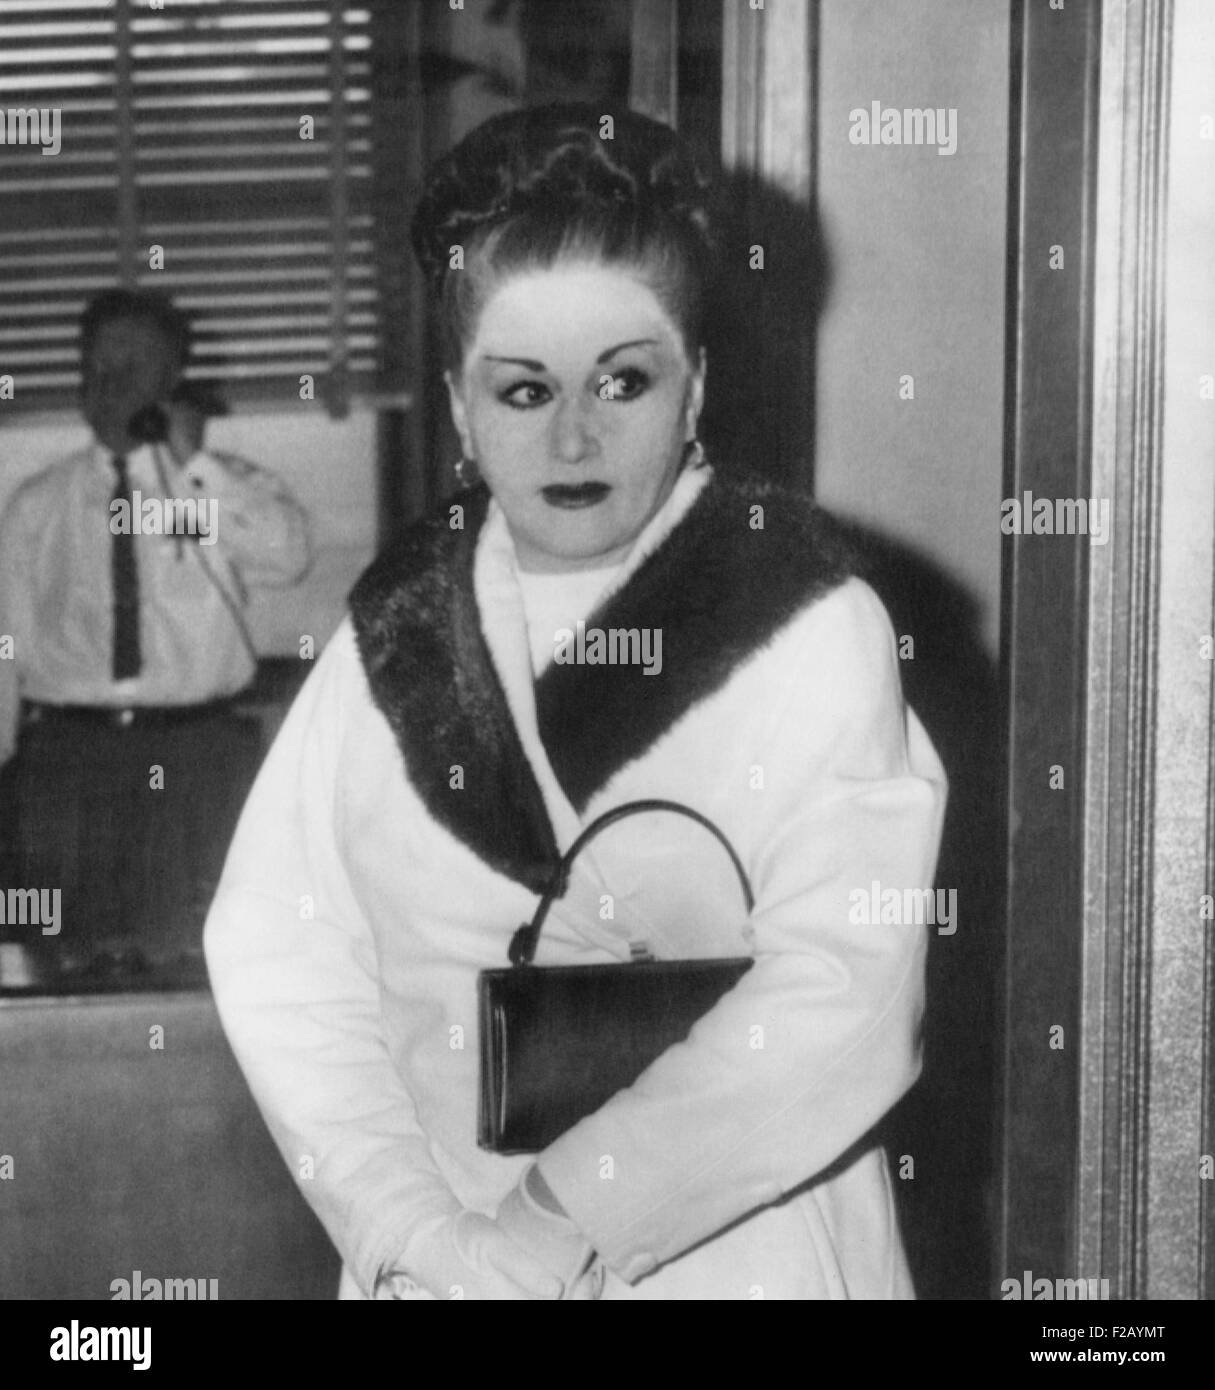 Anna Petillo, estranged wife of racketeer, Vito Genovese, was questioned by Mercer County grand jury. They asked - Stock Image